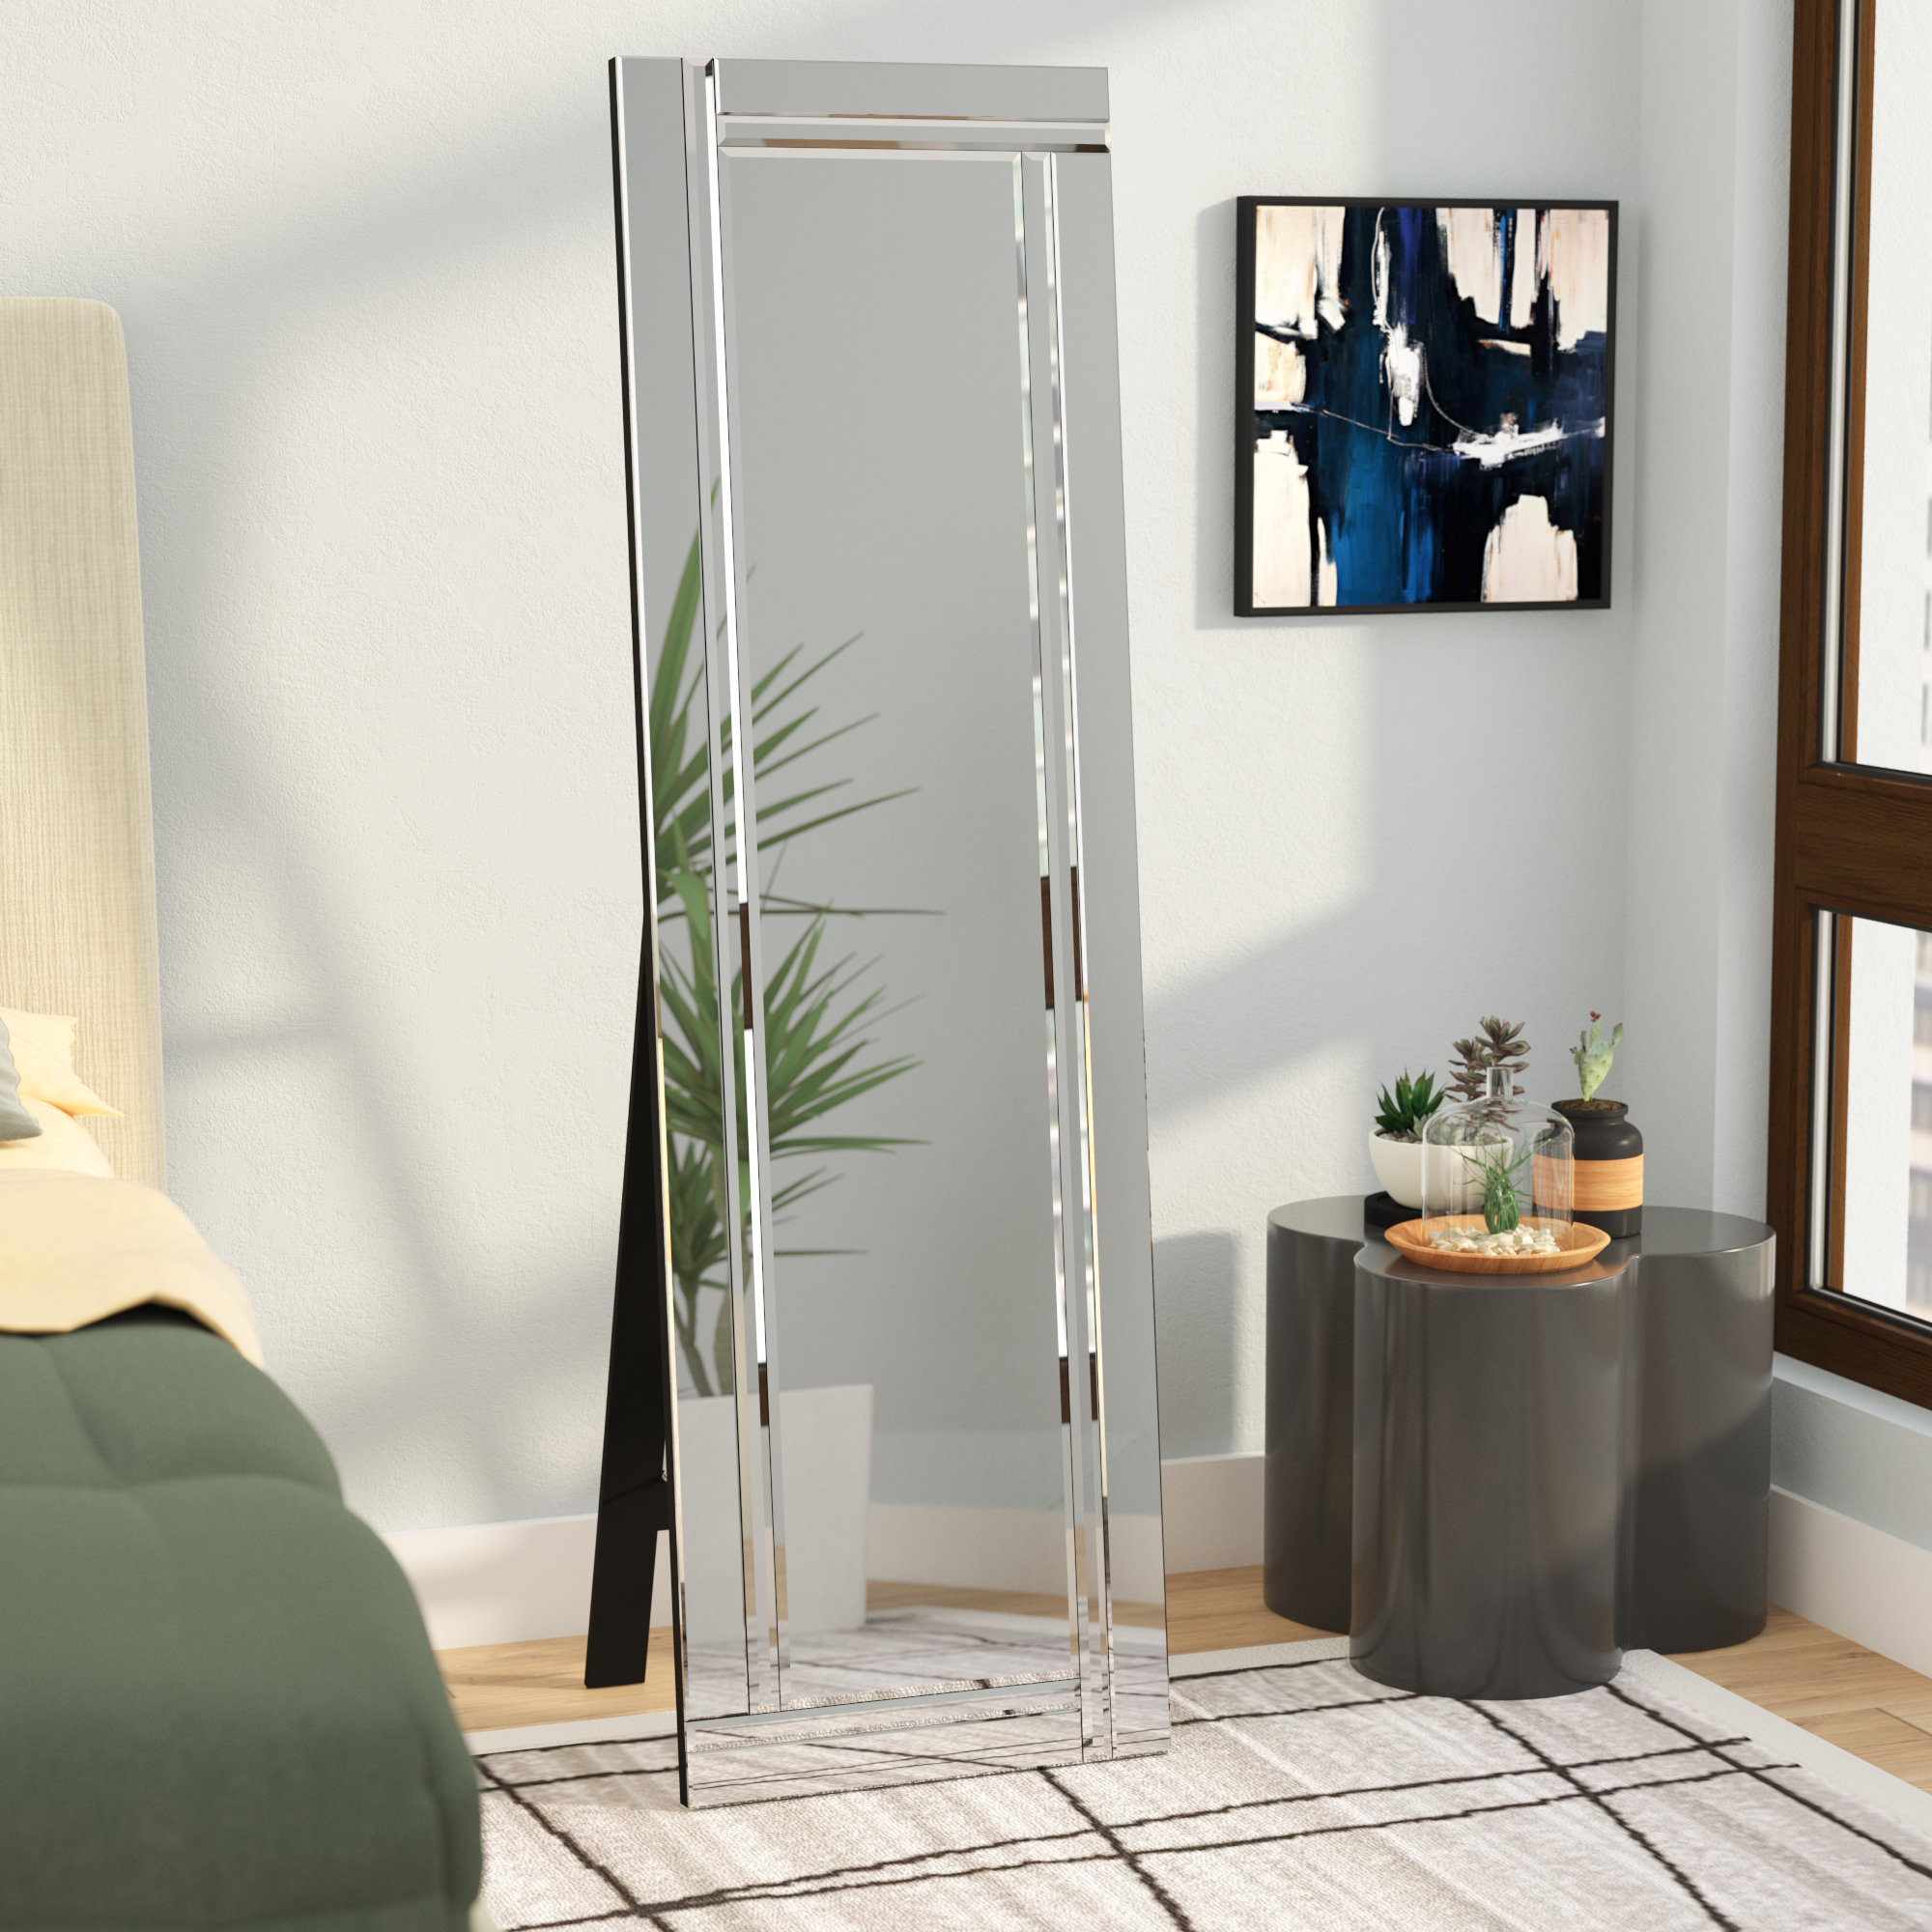 Exciting Full Wall Mirror Design Clos Designer Modern Colorful Ideas With Regard To Most Popular Entire Wall Mirrors (Gallery 14 of 20)